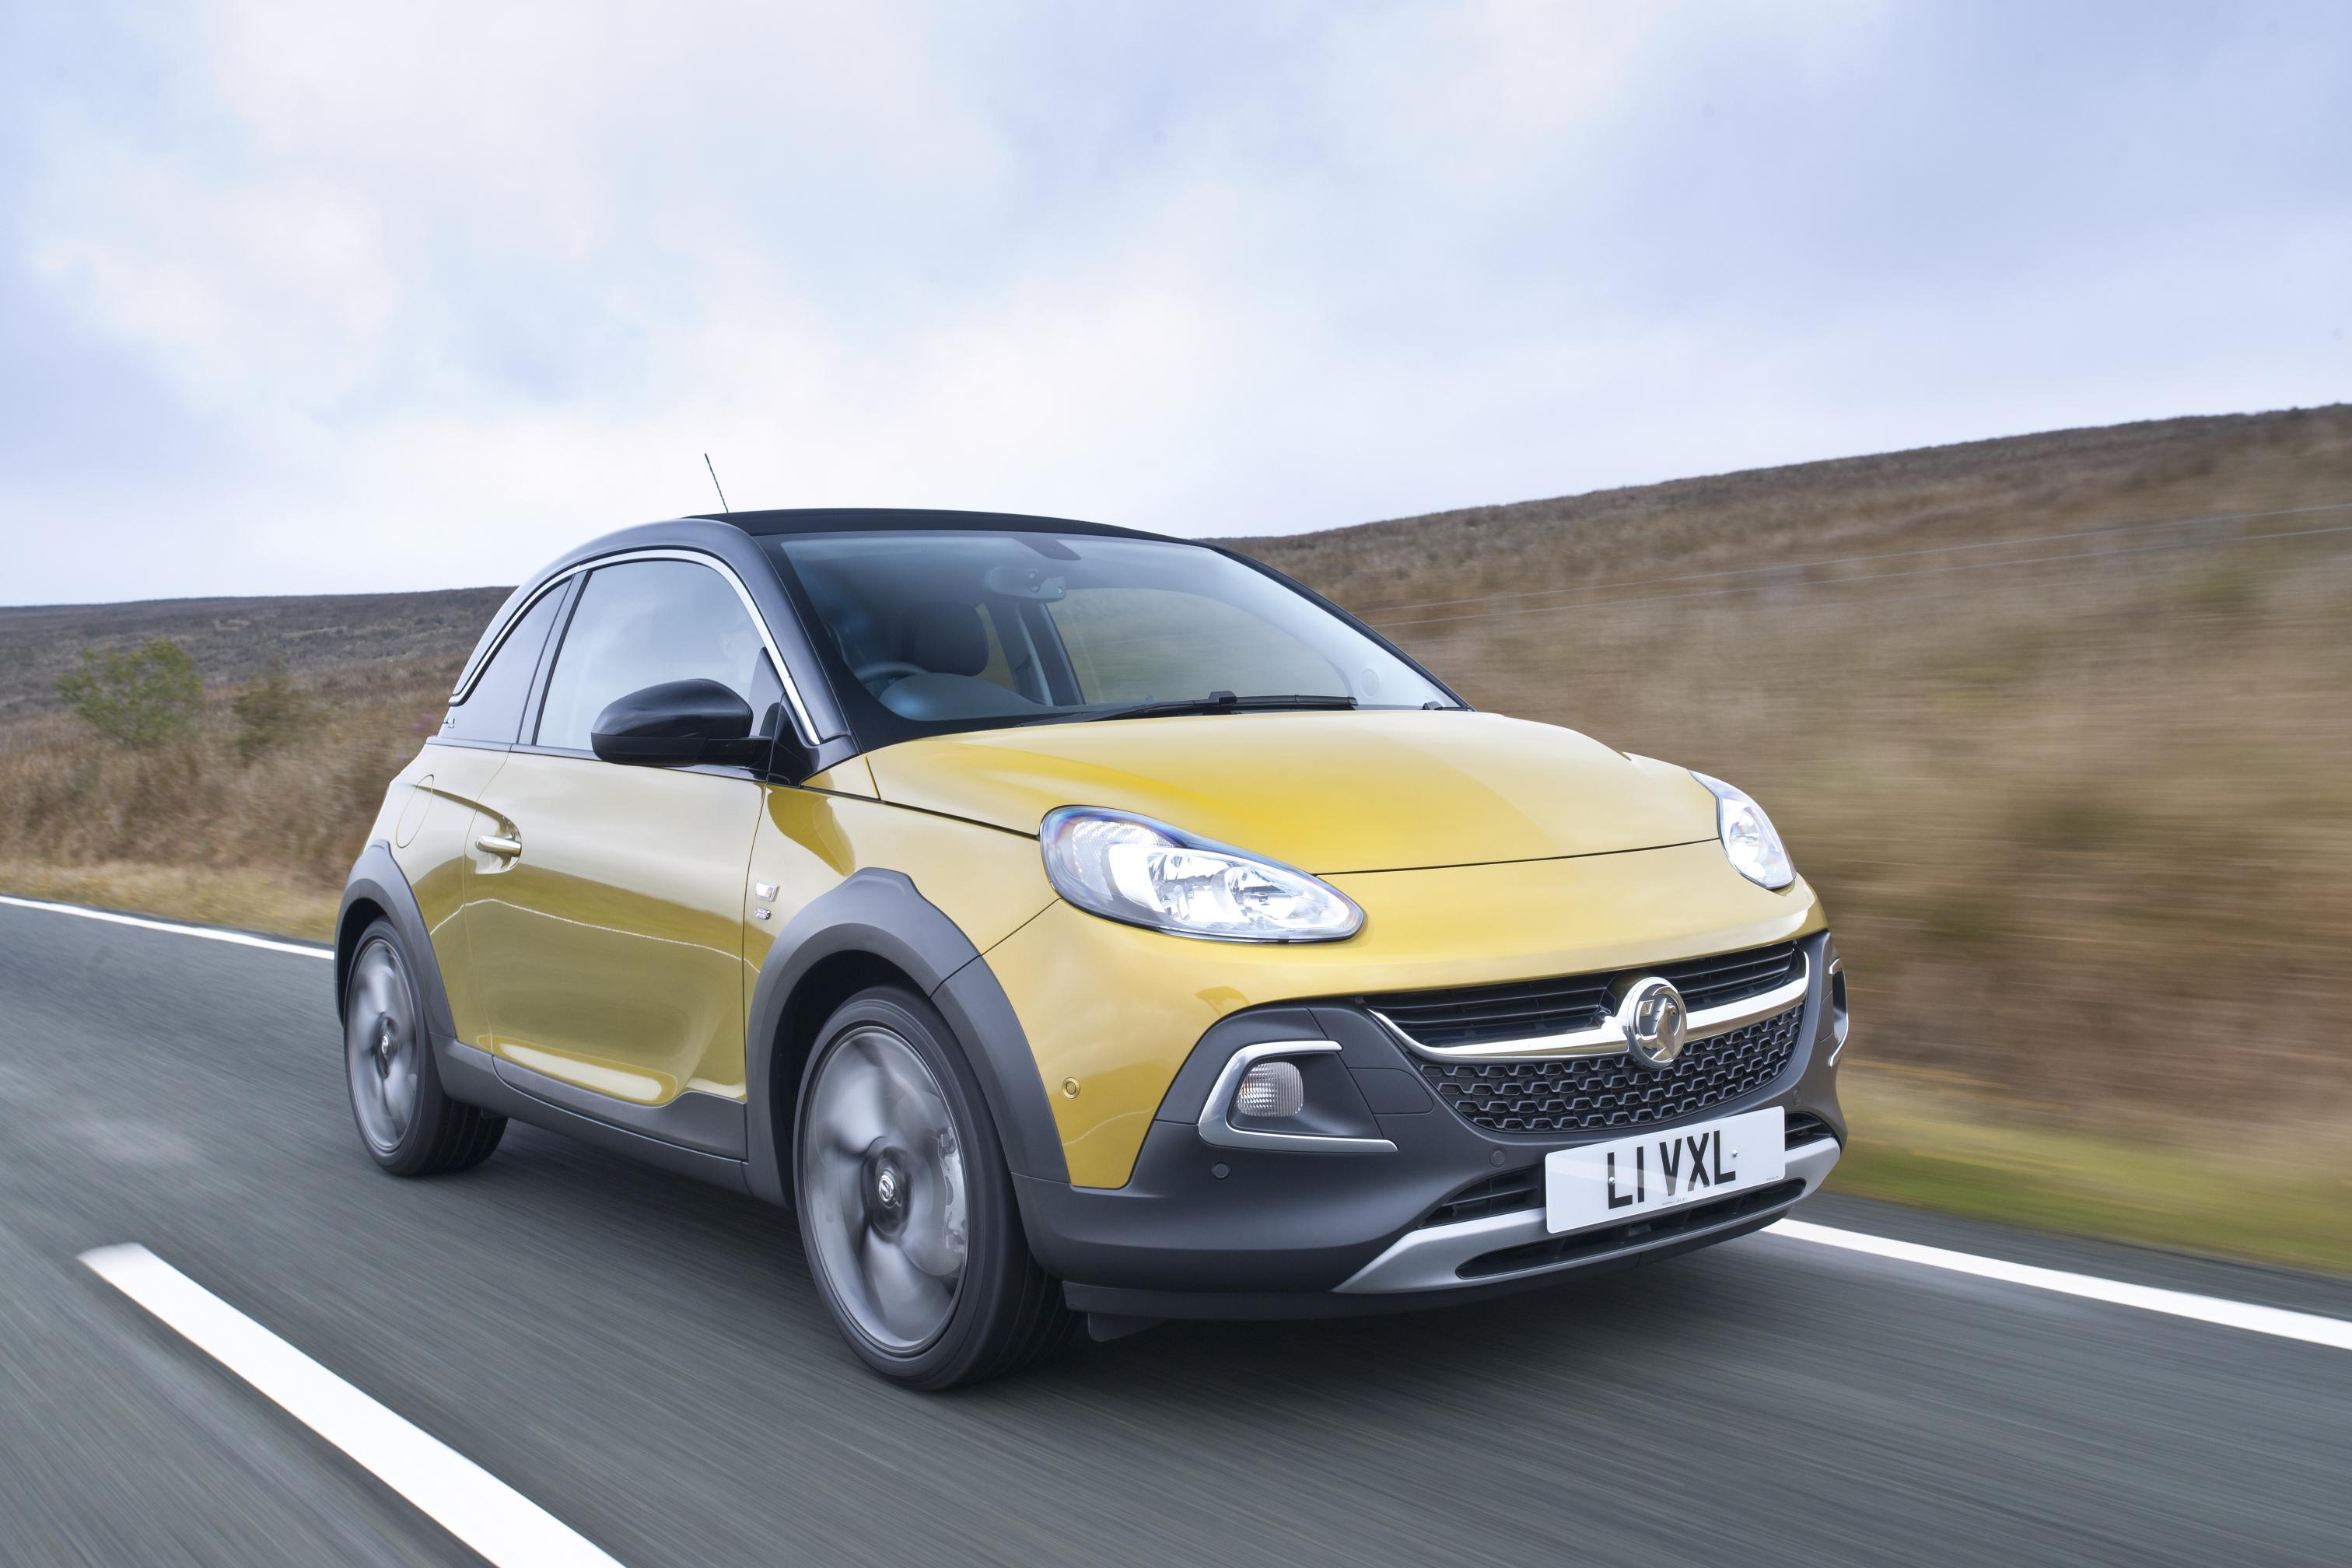 Vauxhall Adam front view in yellow